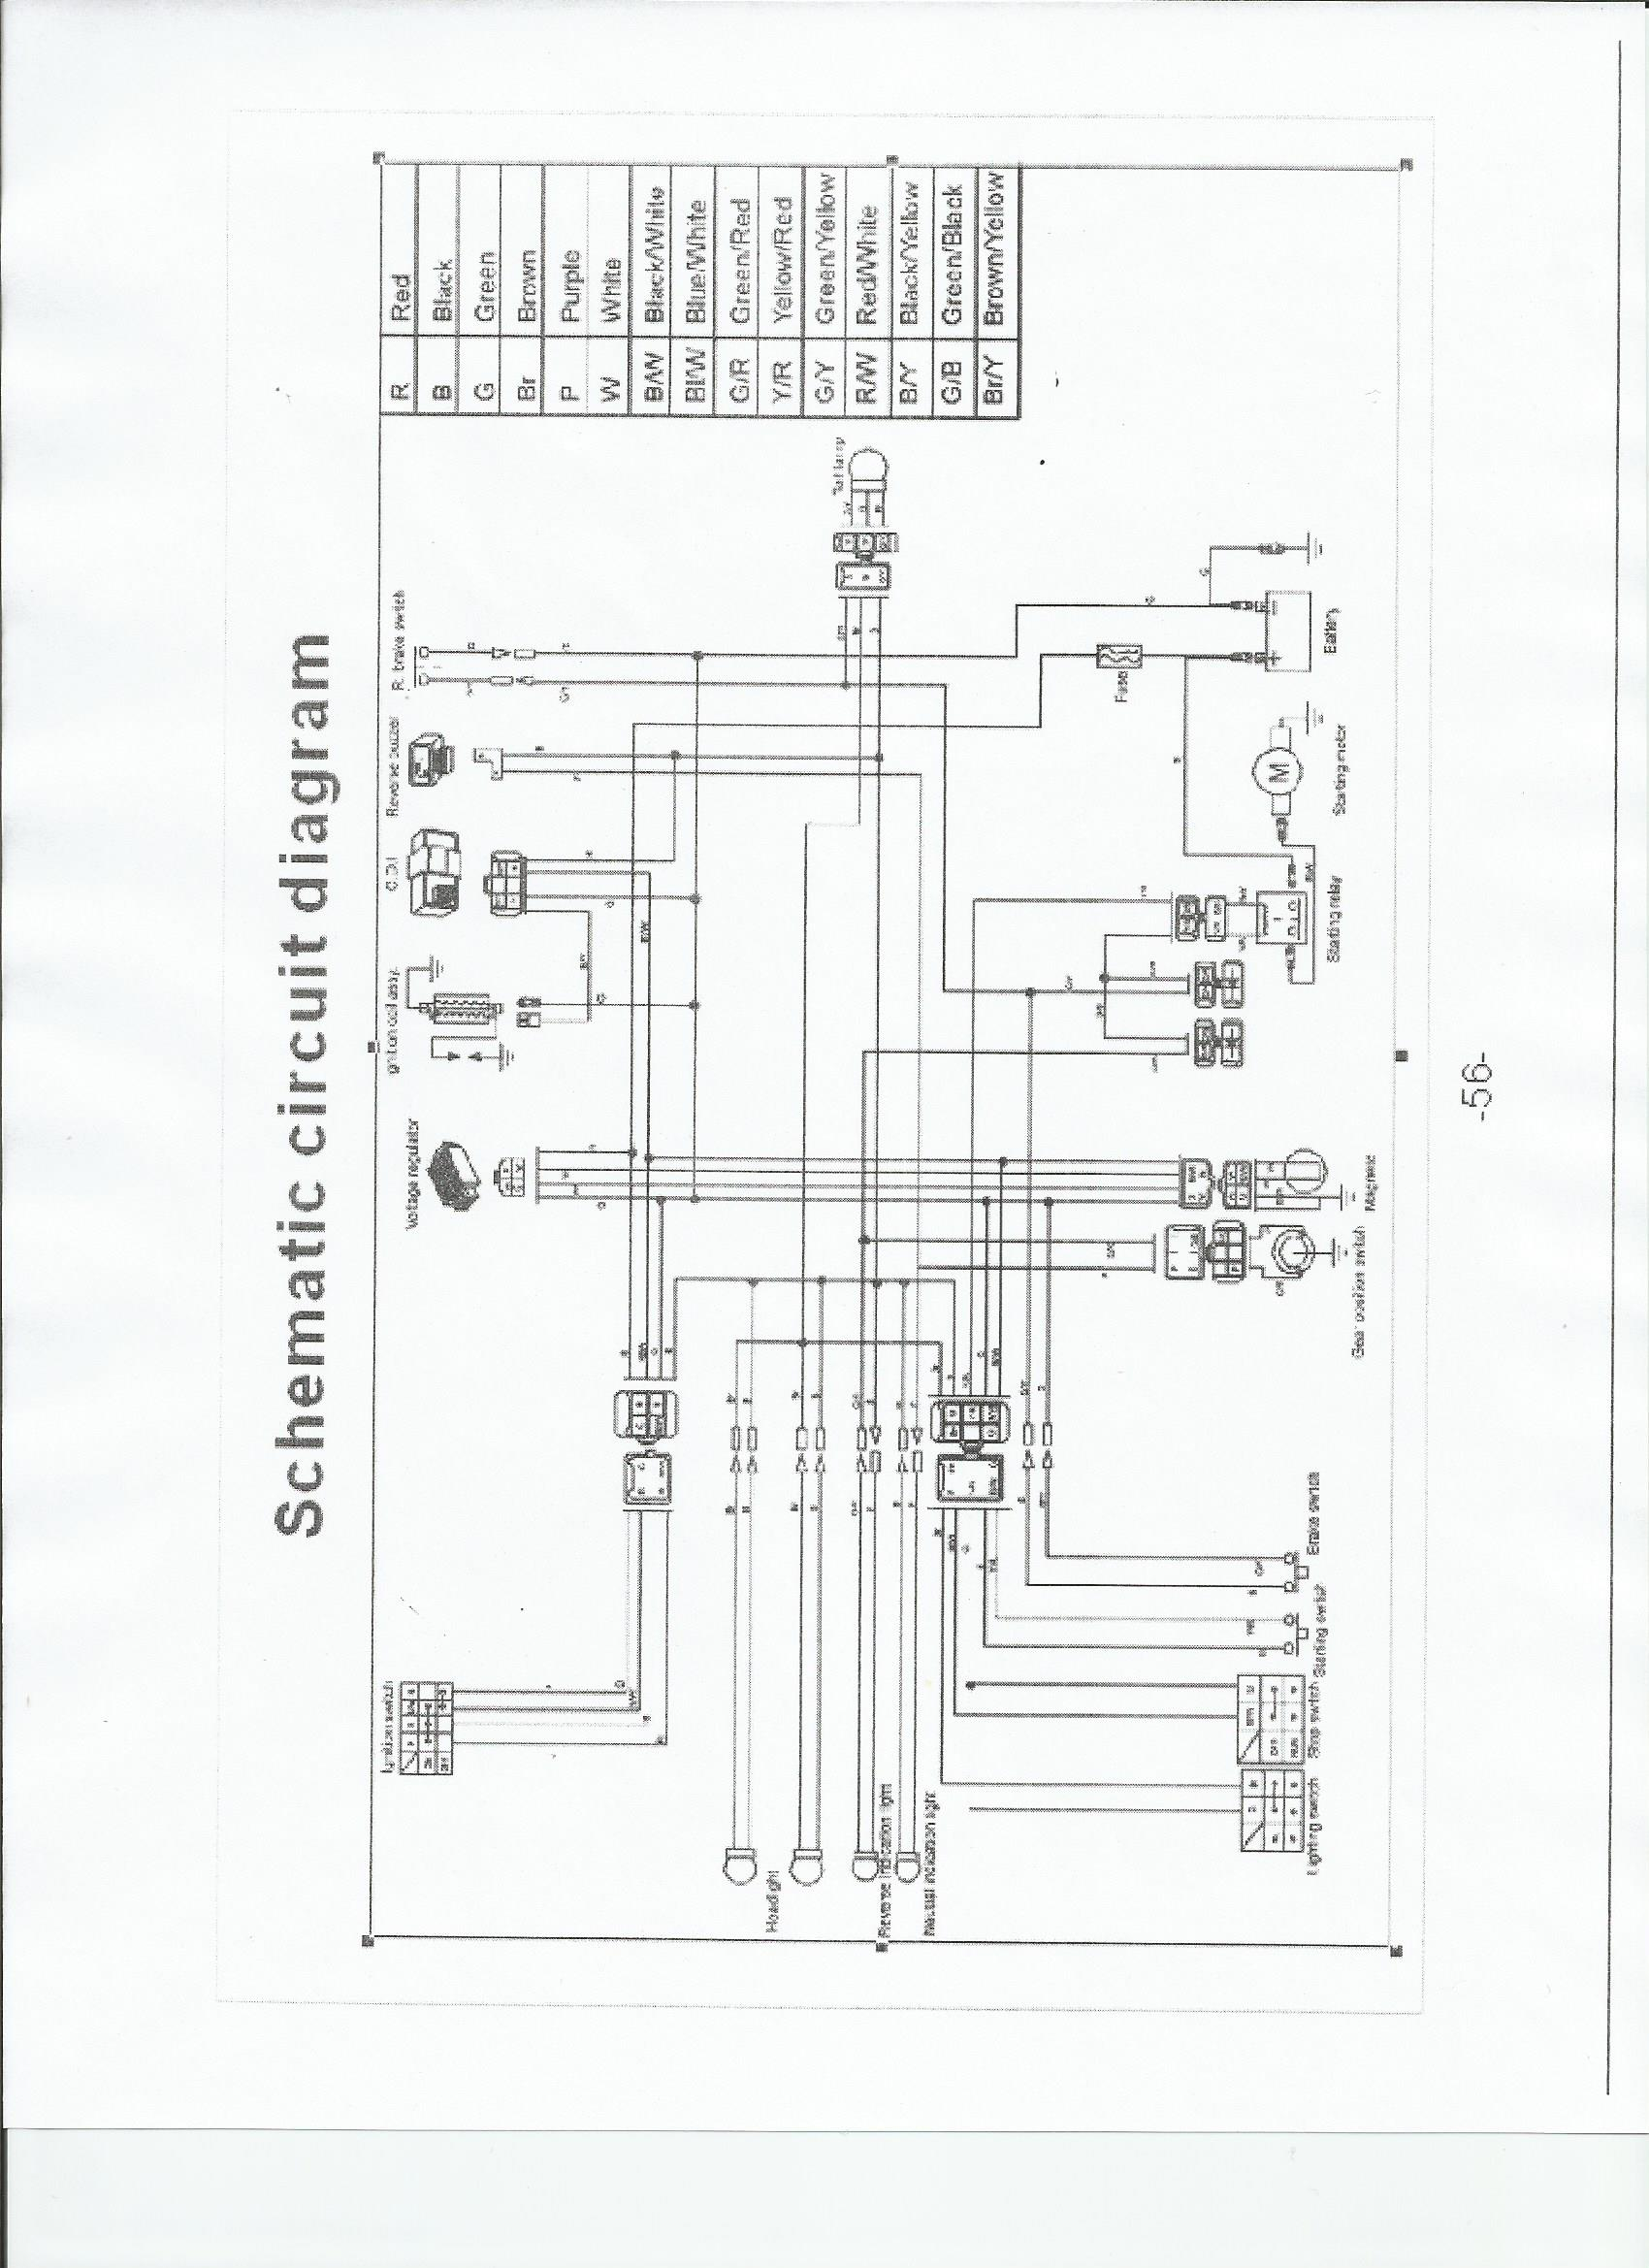 hight resolution of taotao mini and youth atv wiring schematic familygokarts support 150cc wiring diagram panther 70 atv wiring diagram